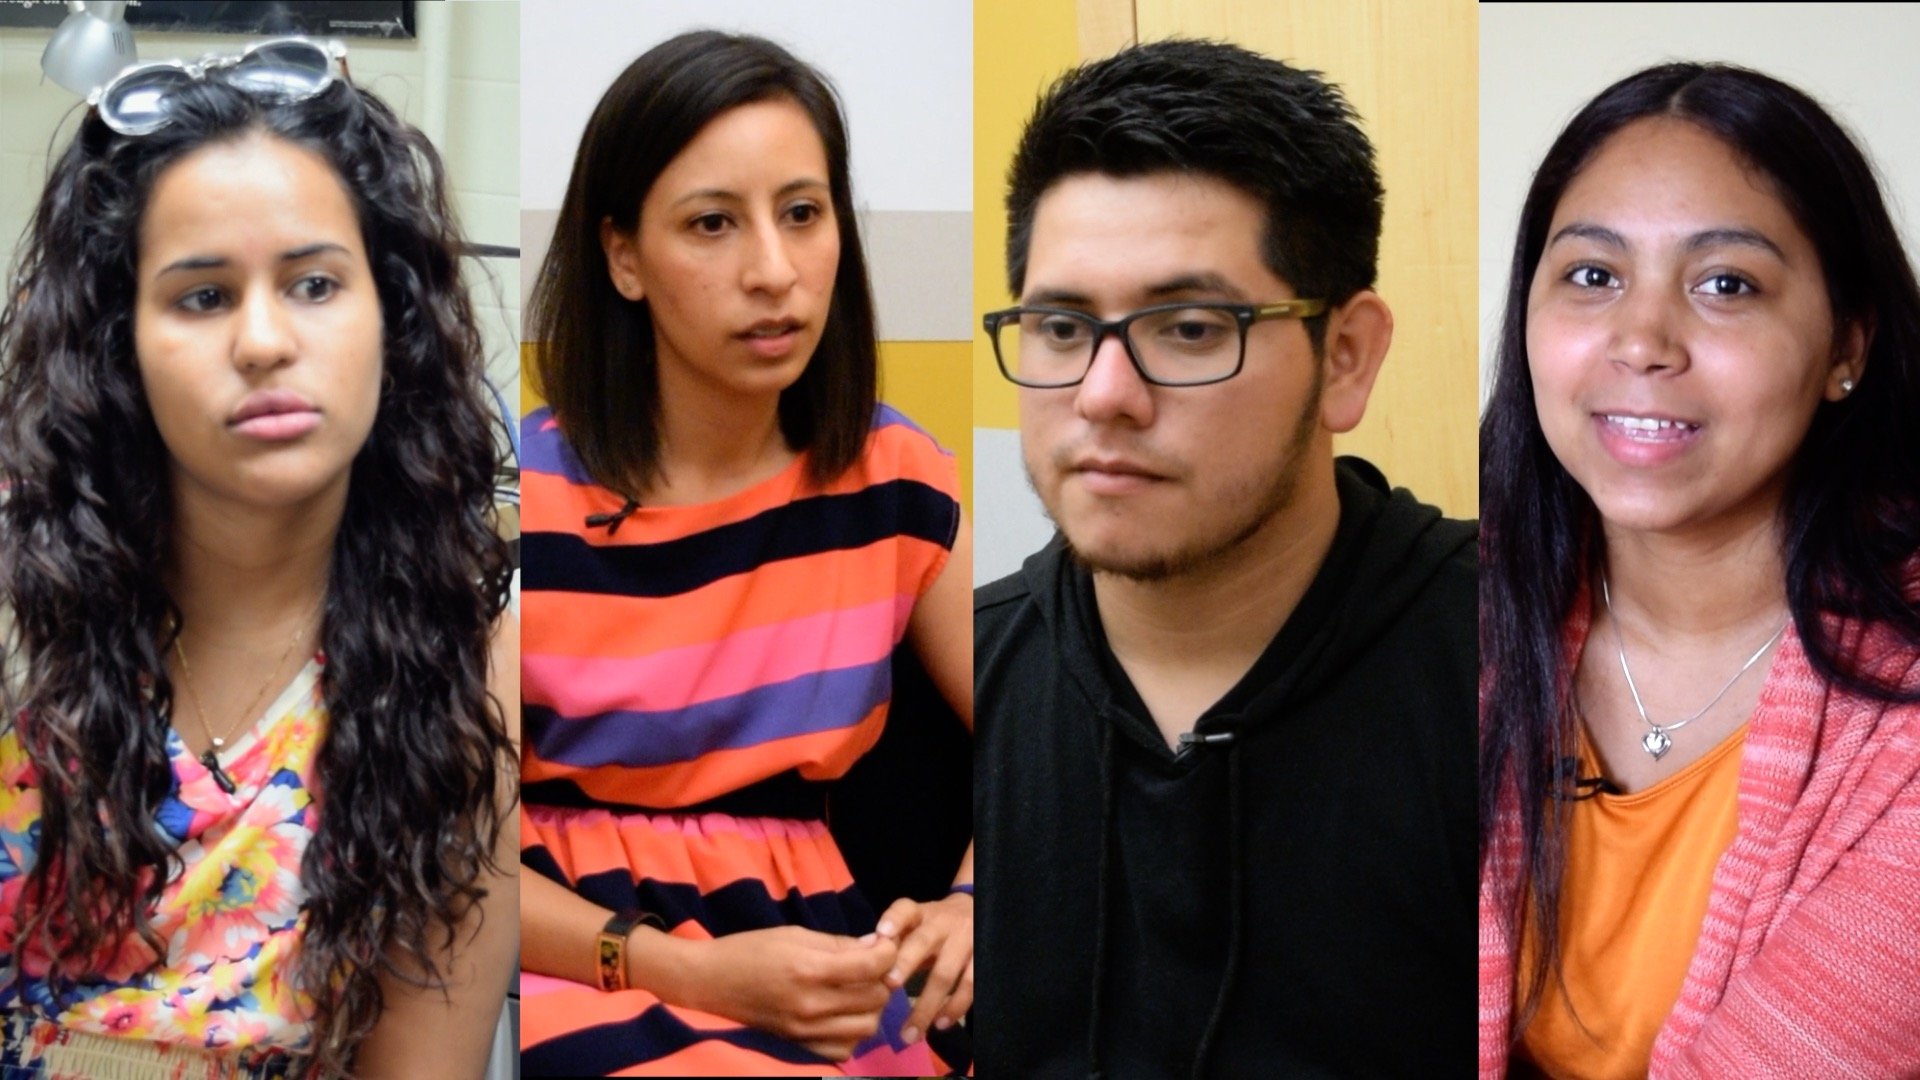 Ana Caldelon, Ithzel Polanco, Daylin Dominguez, and Perla Melo are all first generation college goers in their family.